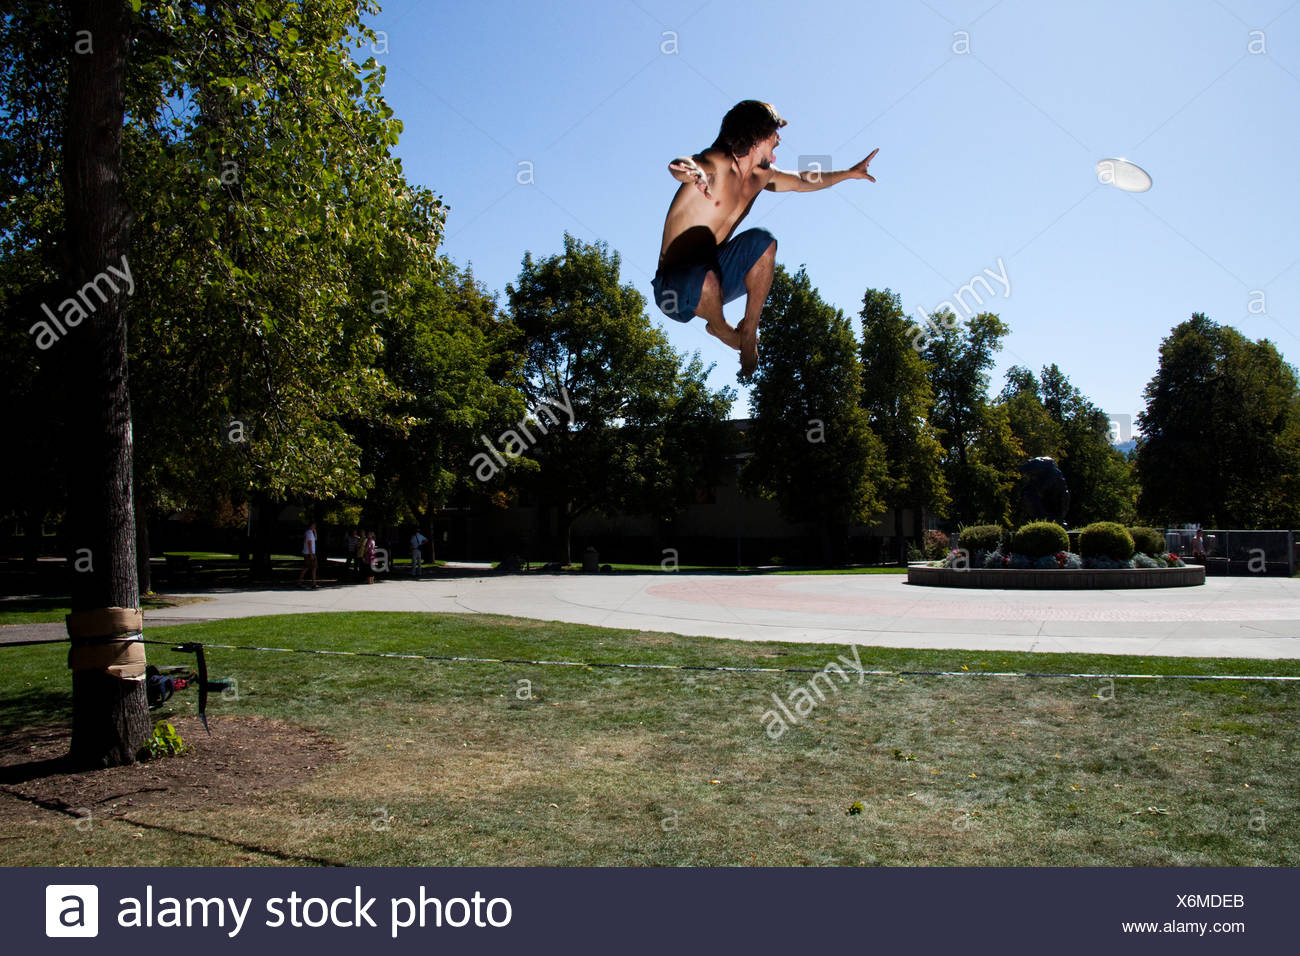 A professional slackliner plays around and catches a flying disk on the slackline on a university campus in Missoula, Montana. - Stock Image